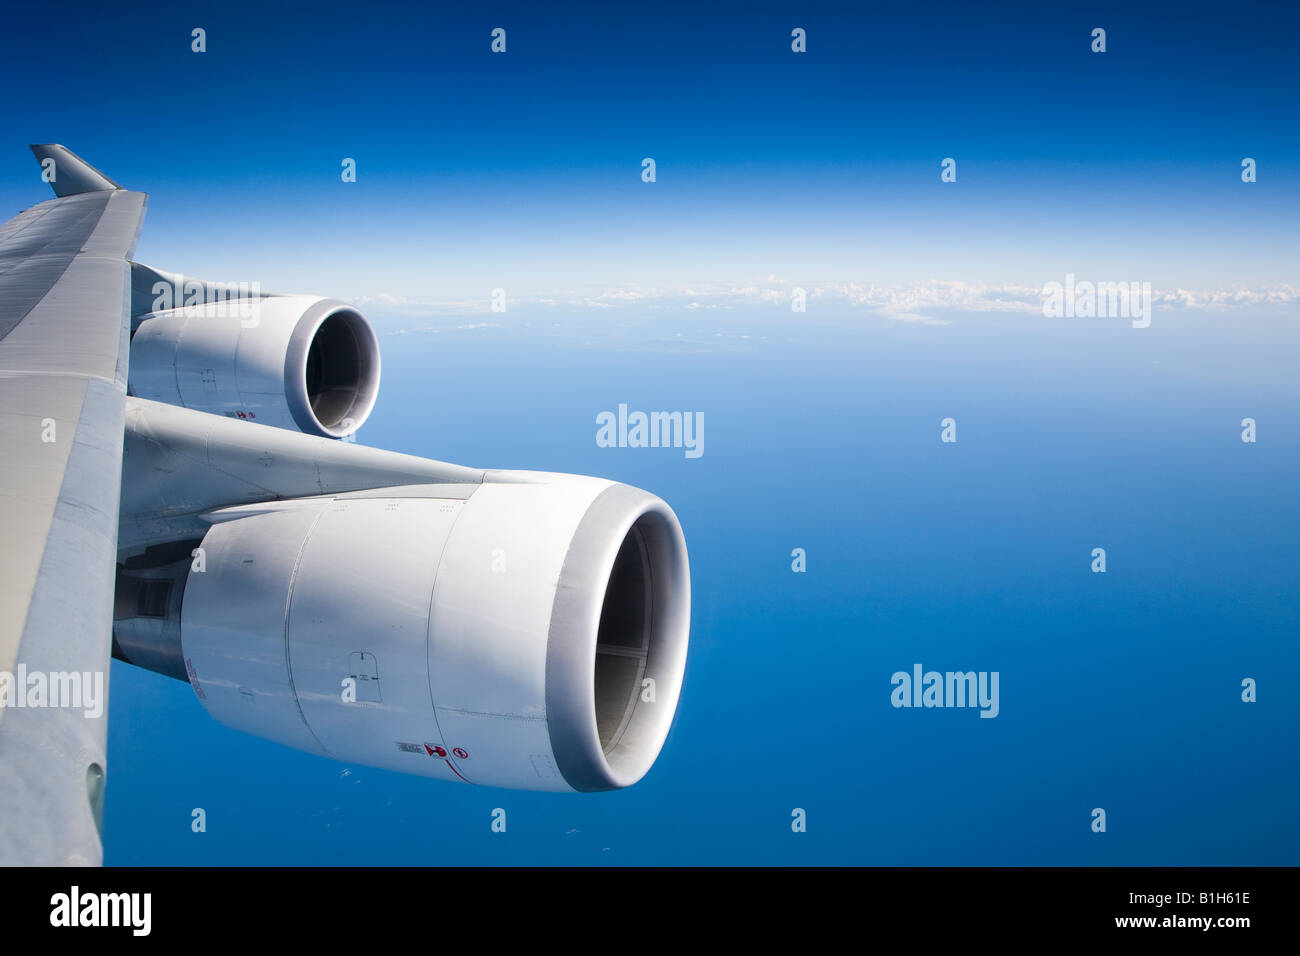 Airplane engines and blue sky - Stock Image